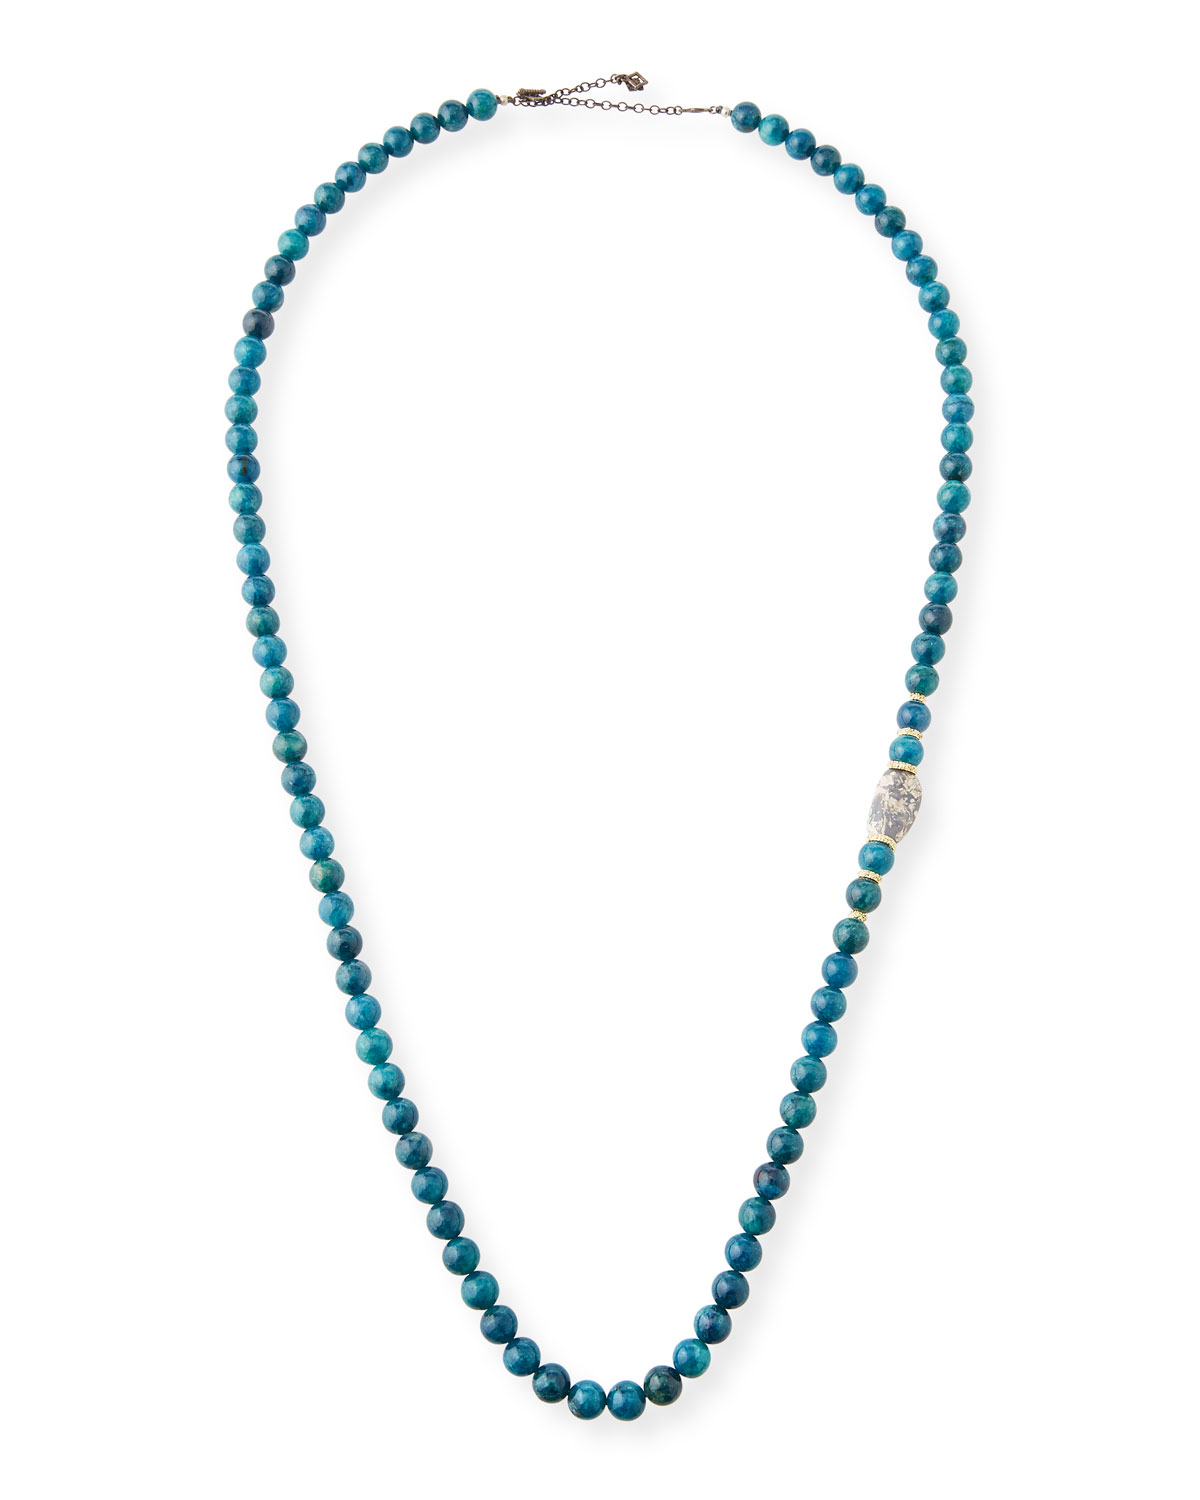 Old World Apatite & Boulder Opal Bead Necklace